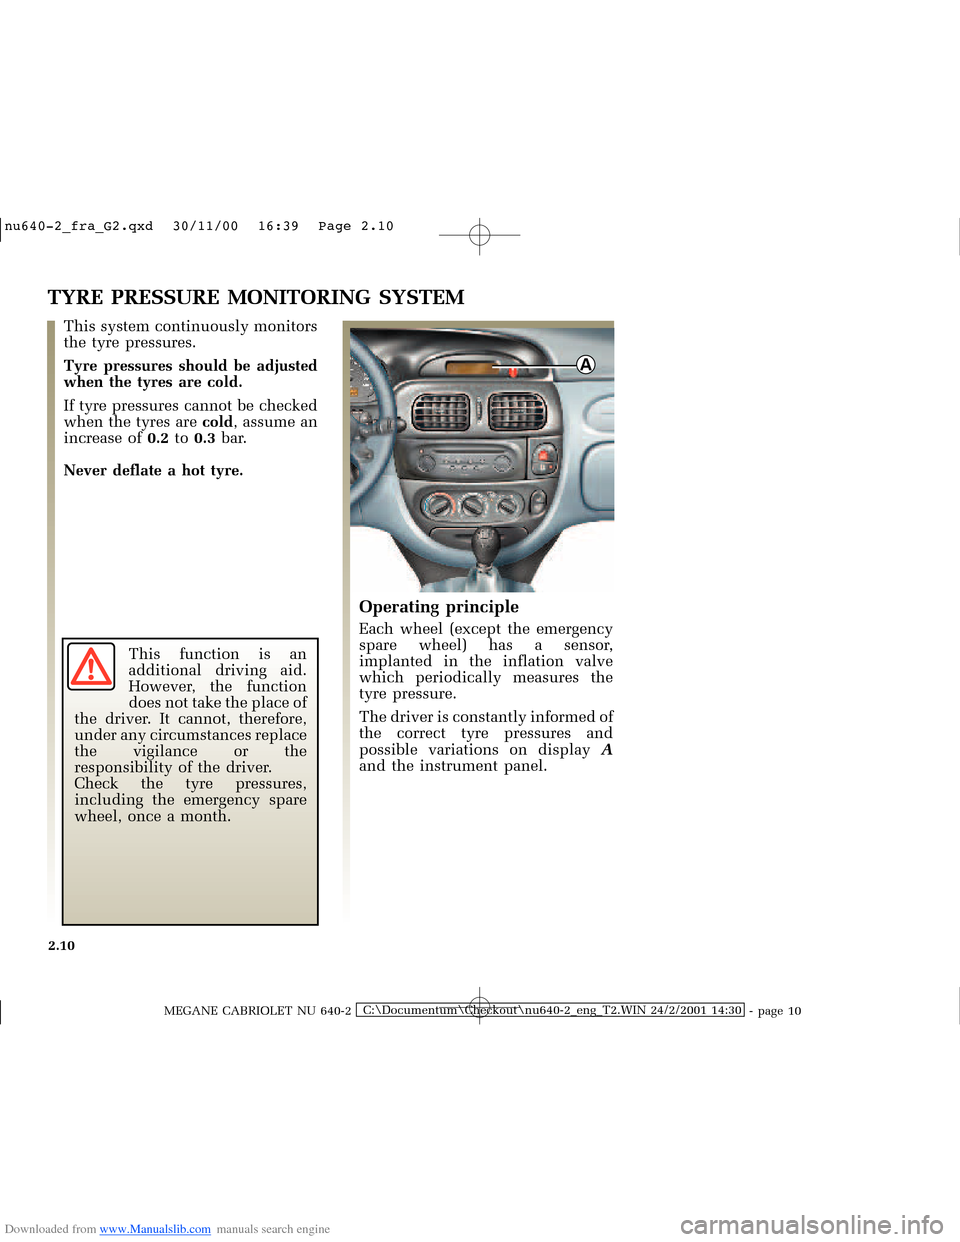 RENAULT MEGANE 2000 X64 / 1.G Owners Manual, Page 69